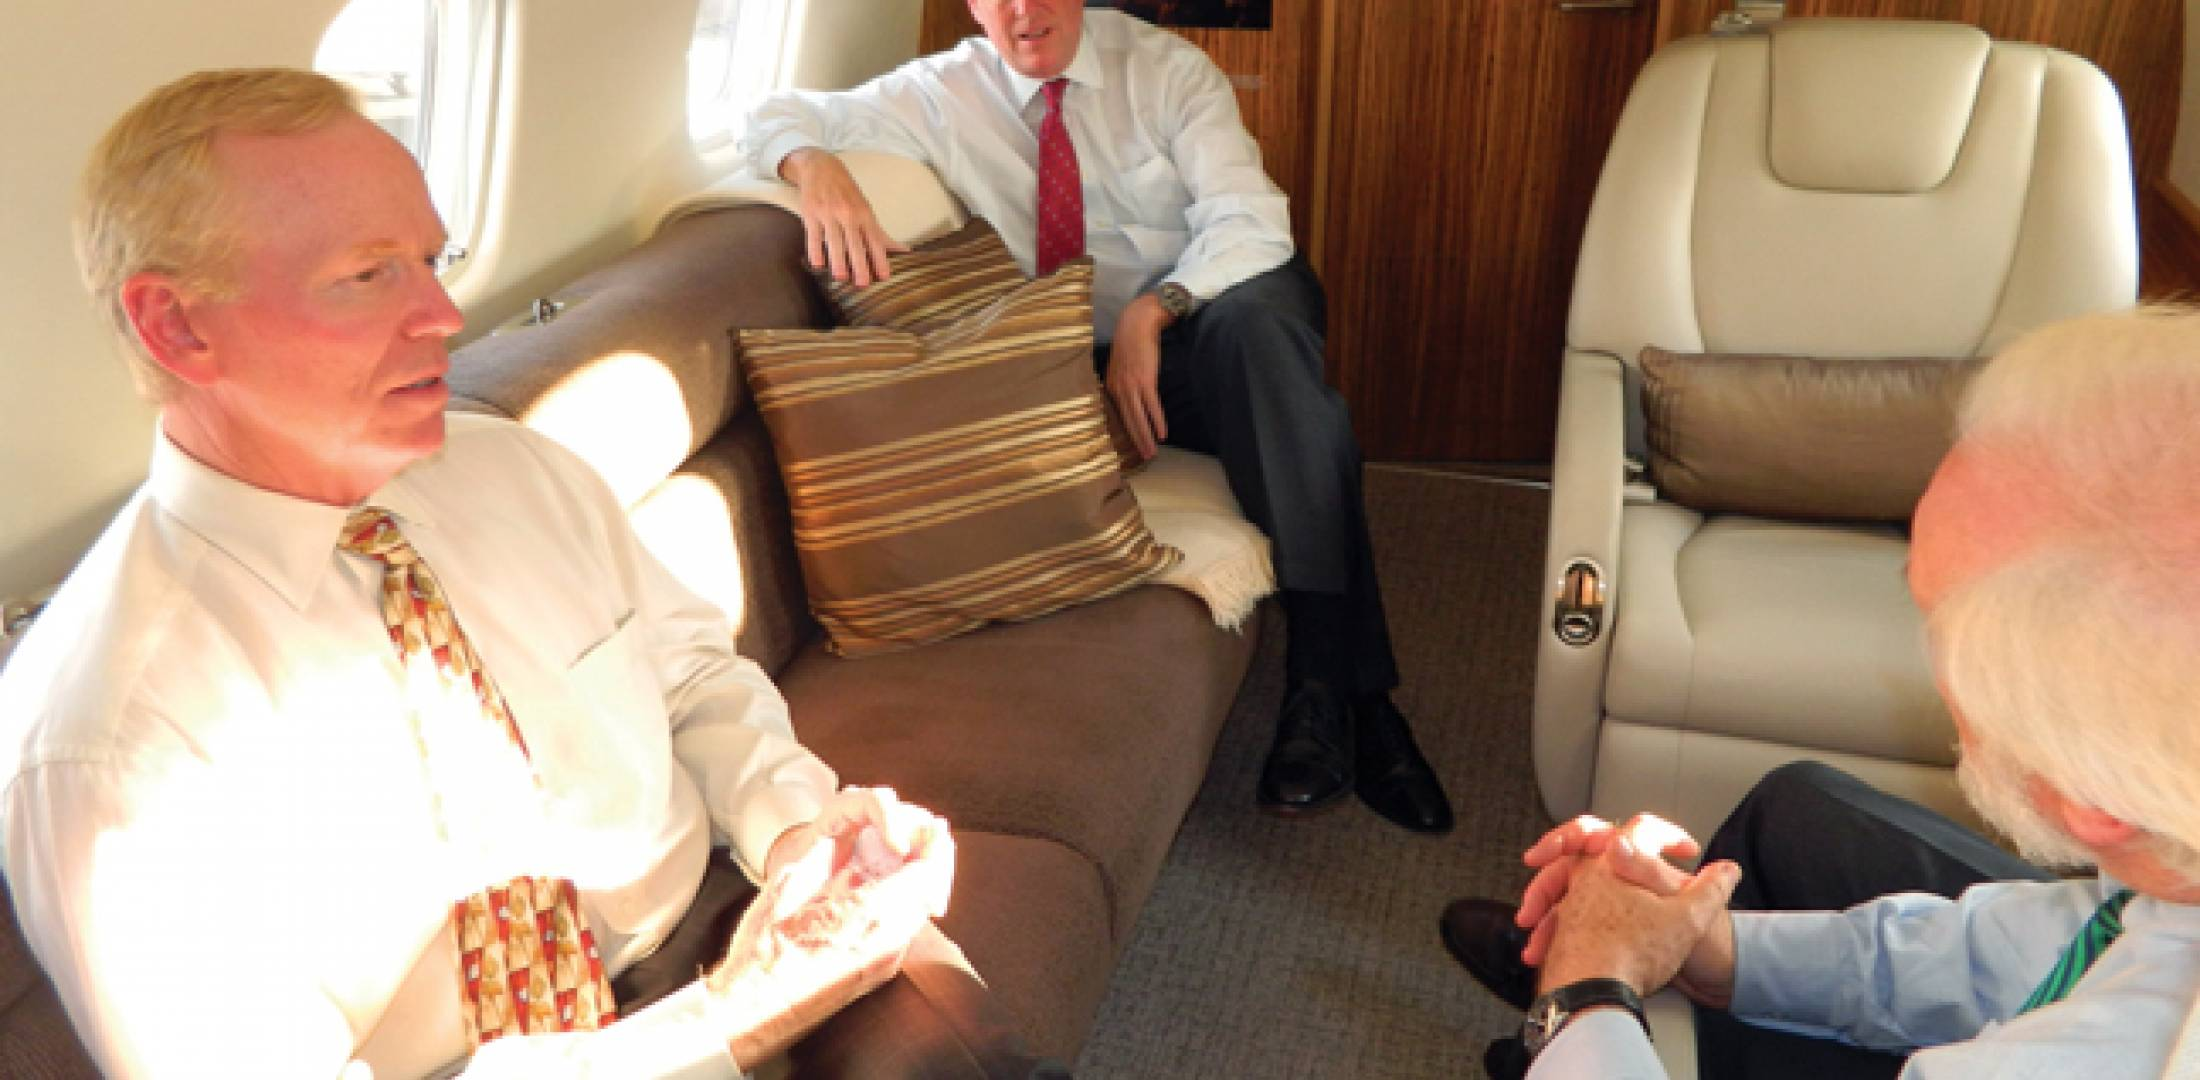 L-r: Embraer's Robert Knebel and Christian Kennedy chat with this magazine's editor aboard the Legacy 650 last month. (Photo: R. Randall Padfield)